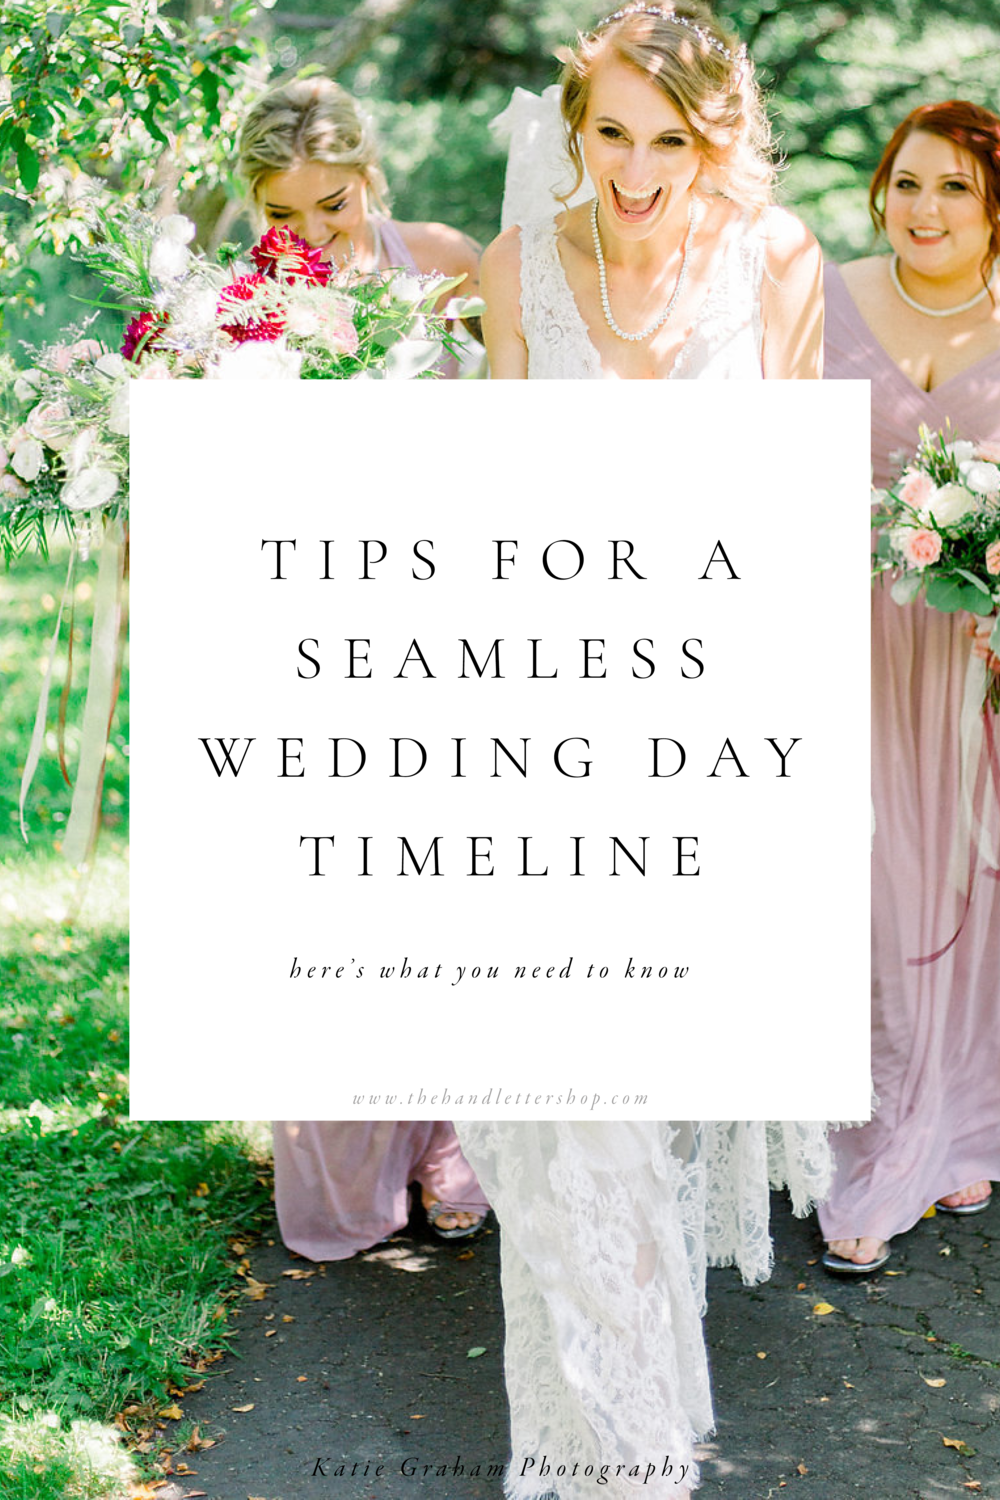 wedding day timeline tips #thehandlettershop.png